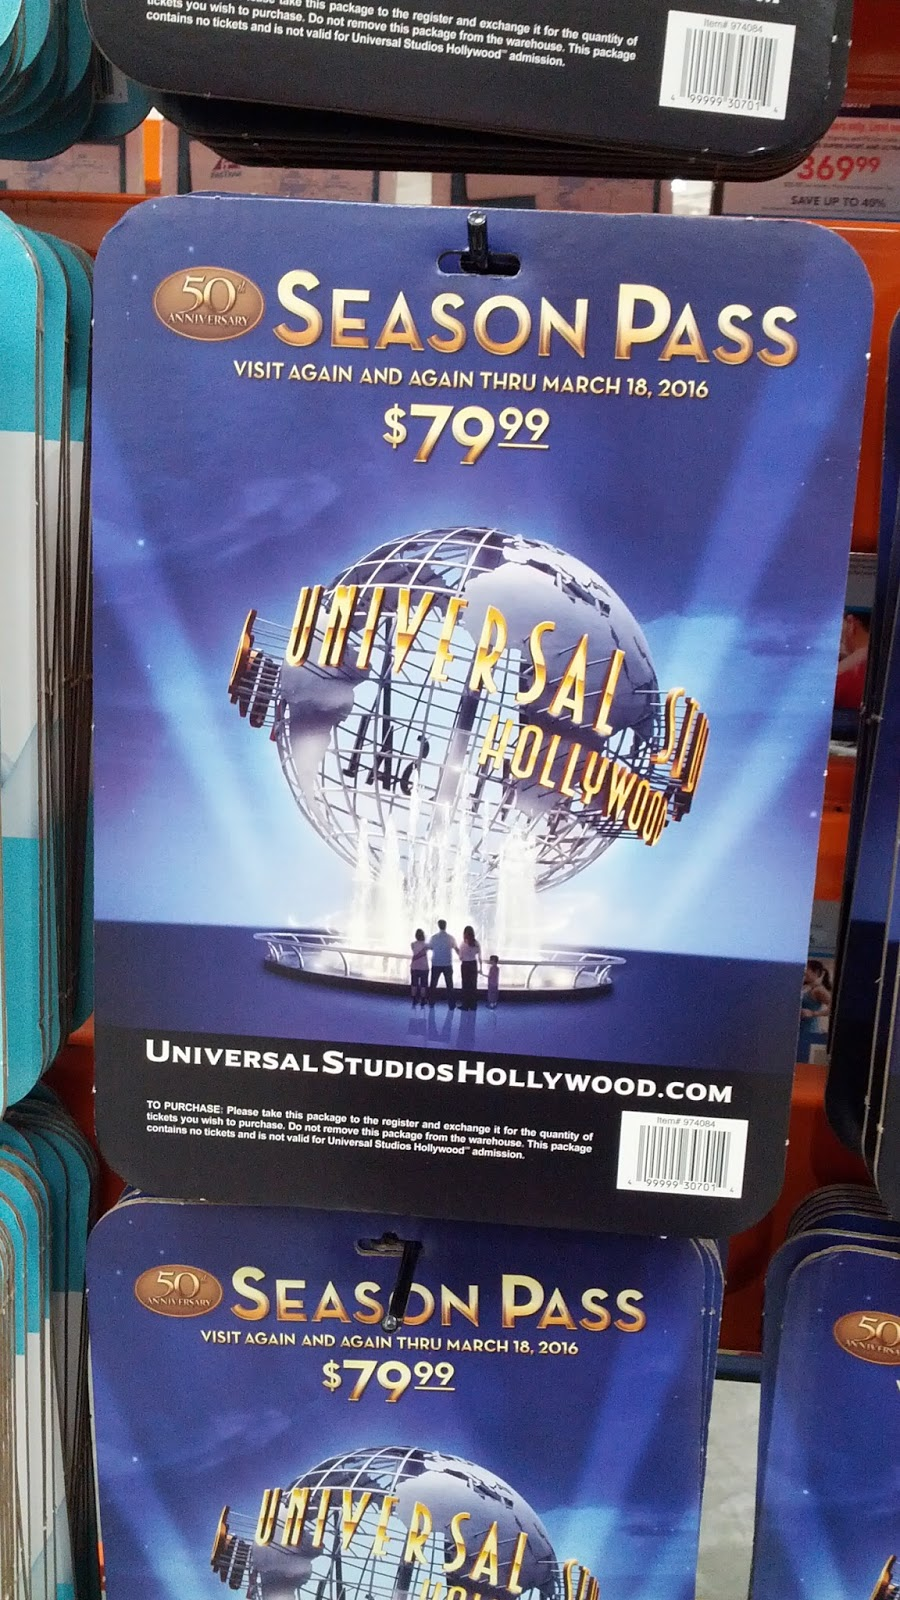 Summer fun with Universal Studios Hollywood Season Pass